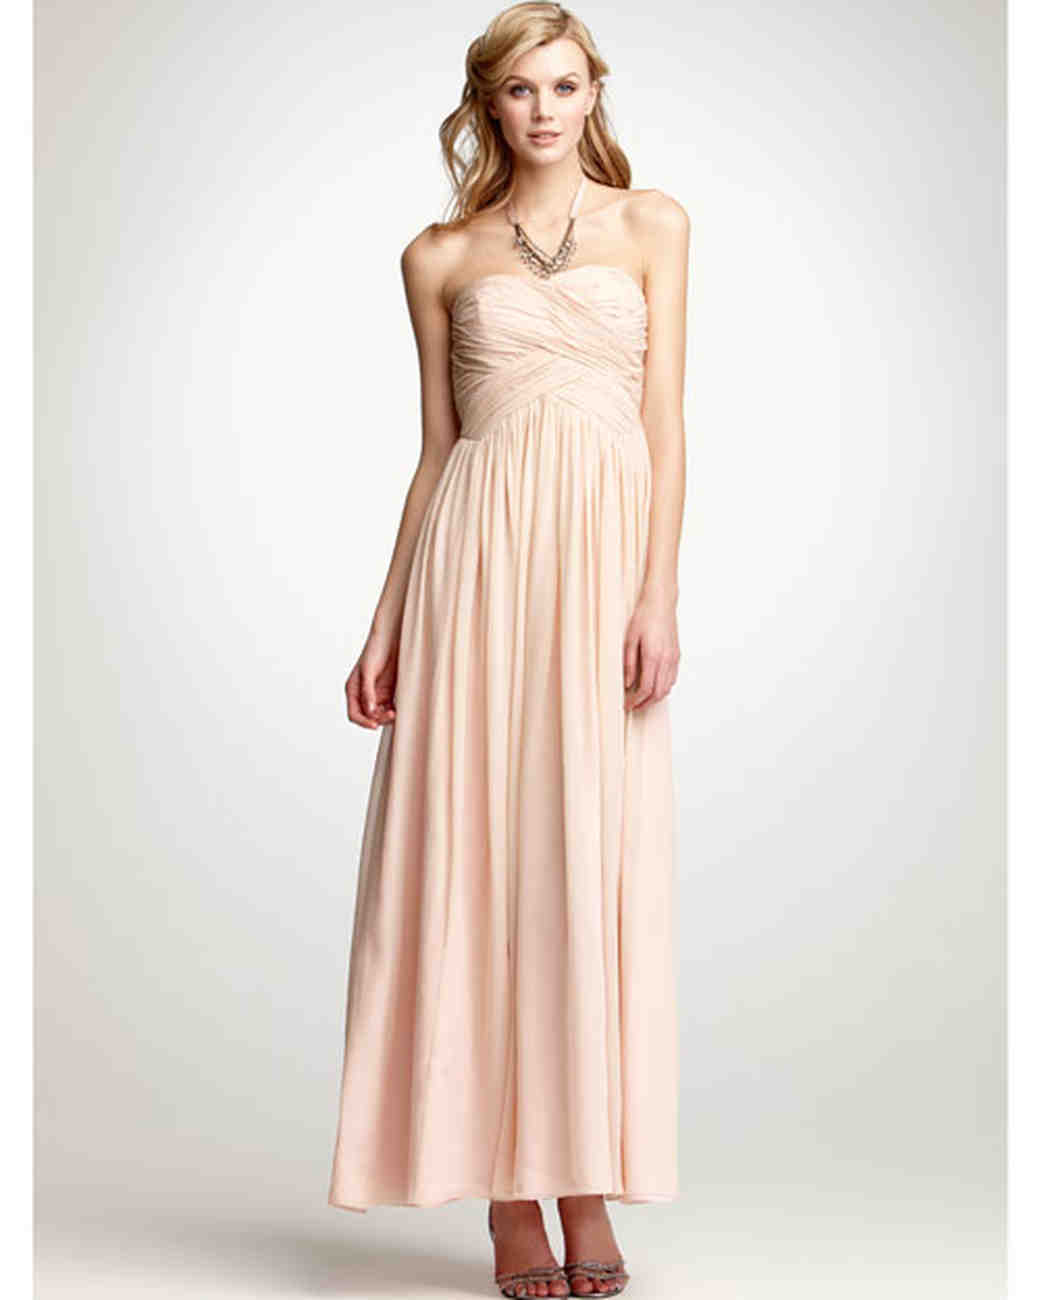 Bridesmaid dresses for beach weddings martha stewart weddings junglespirit Choice Image